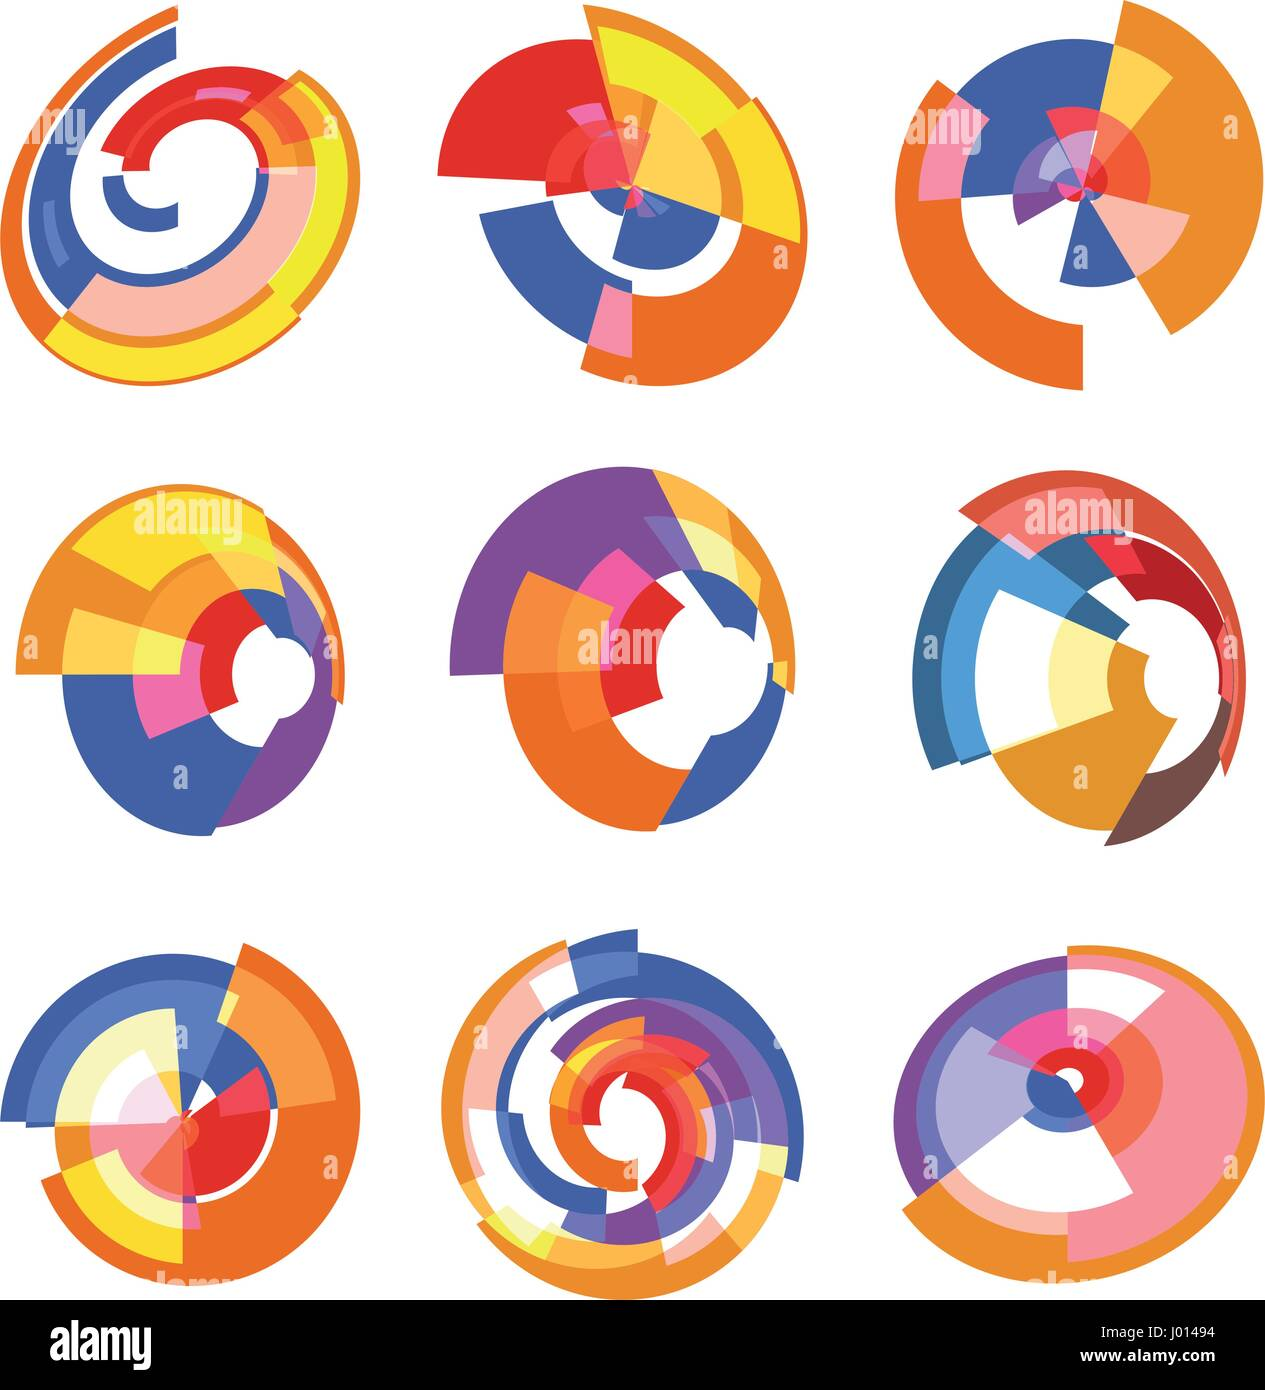 Isolated Abstract Colorful Pie Chart Logos Set Round Shape Diagram Logotypes Collection Infographic Element Vector Illustration